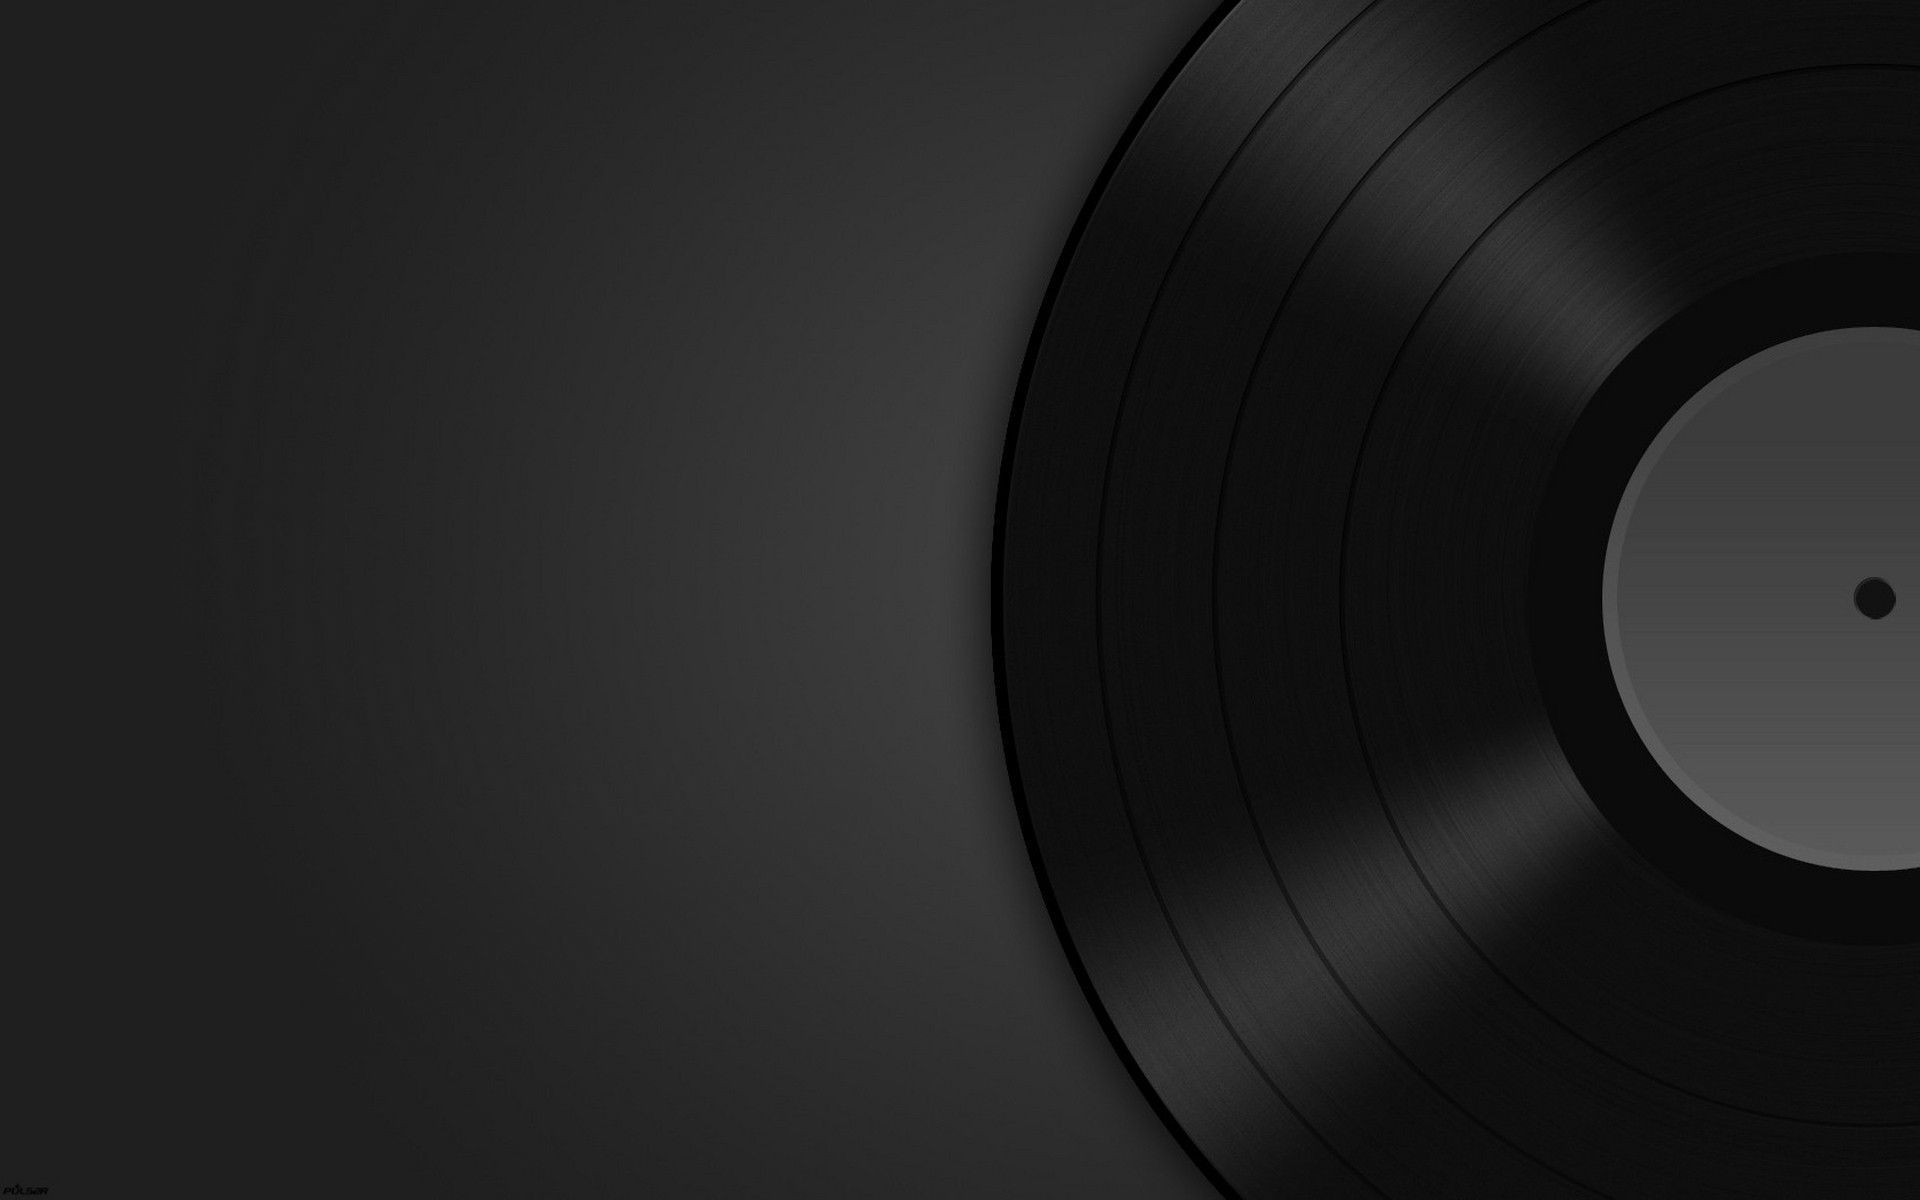 Black Music High Quality Wallpapers